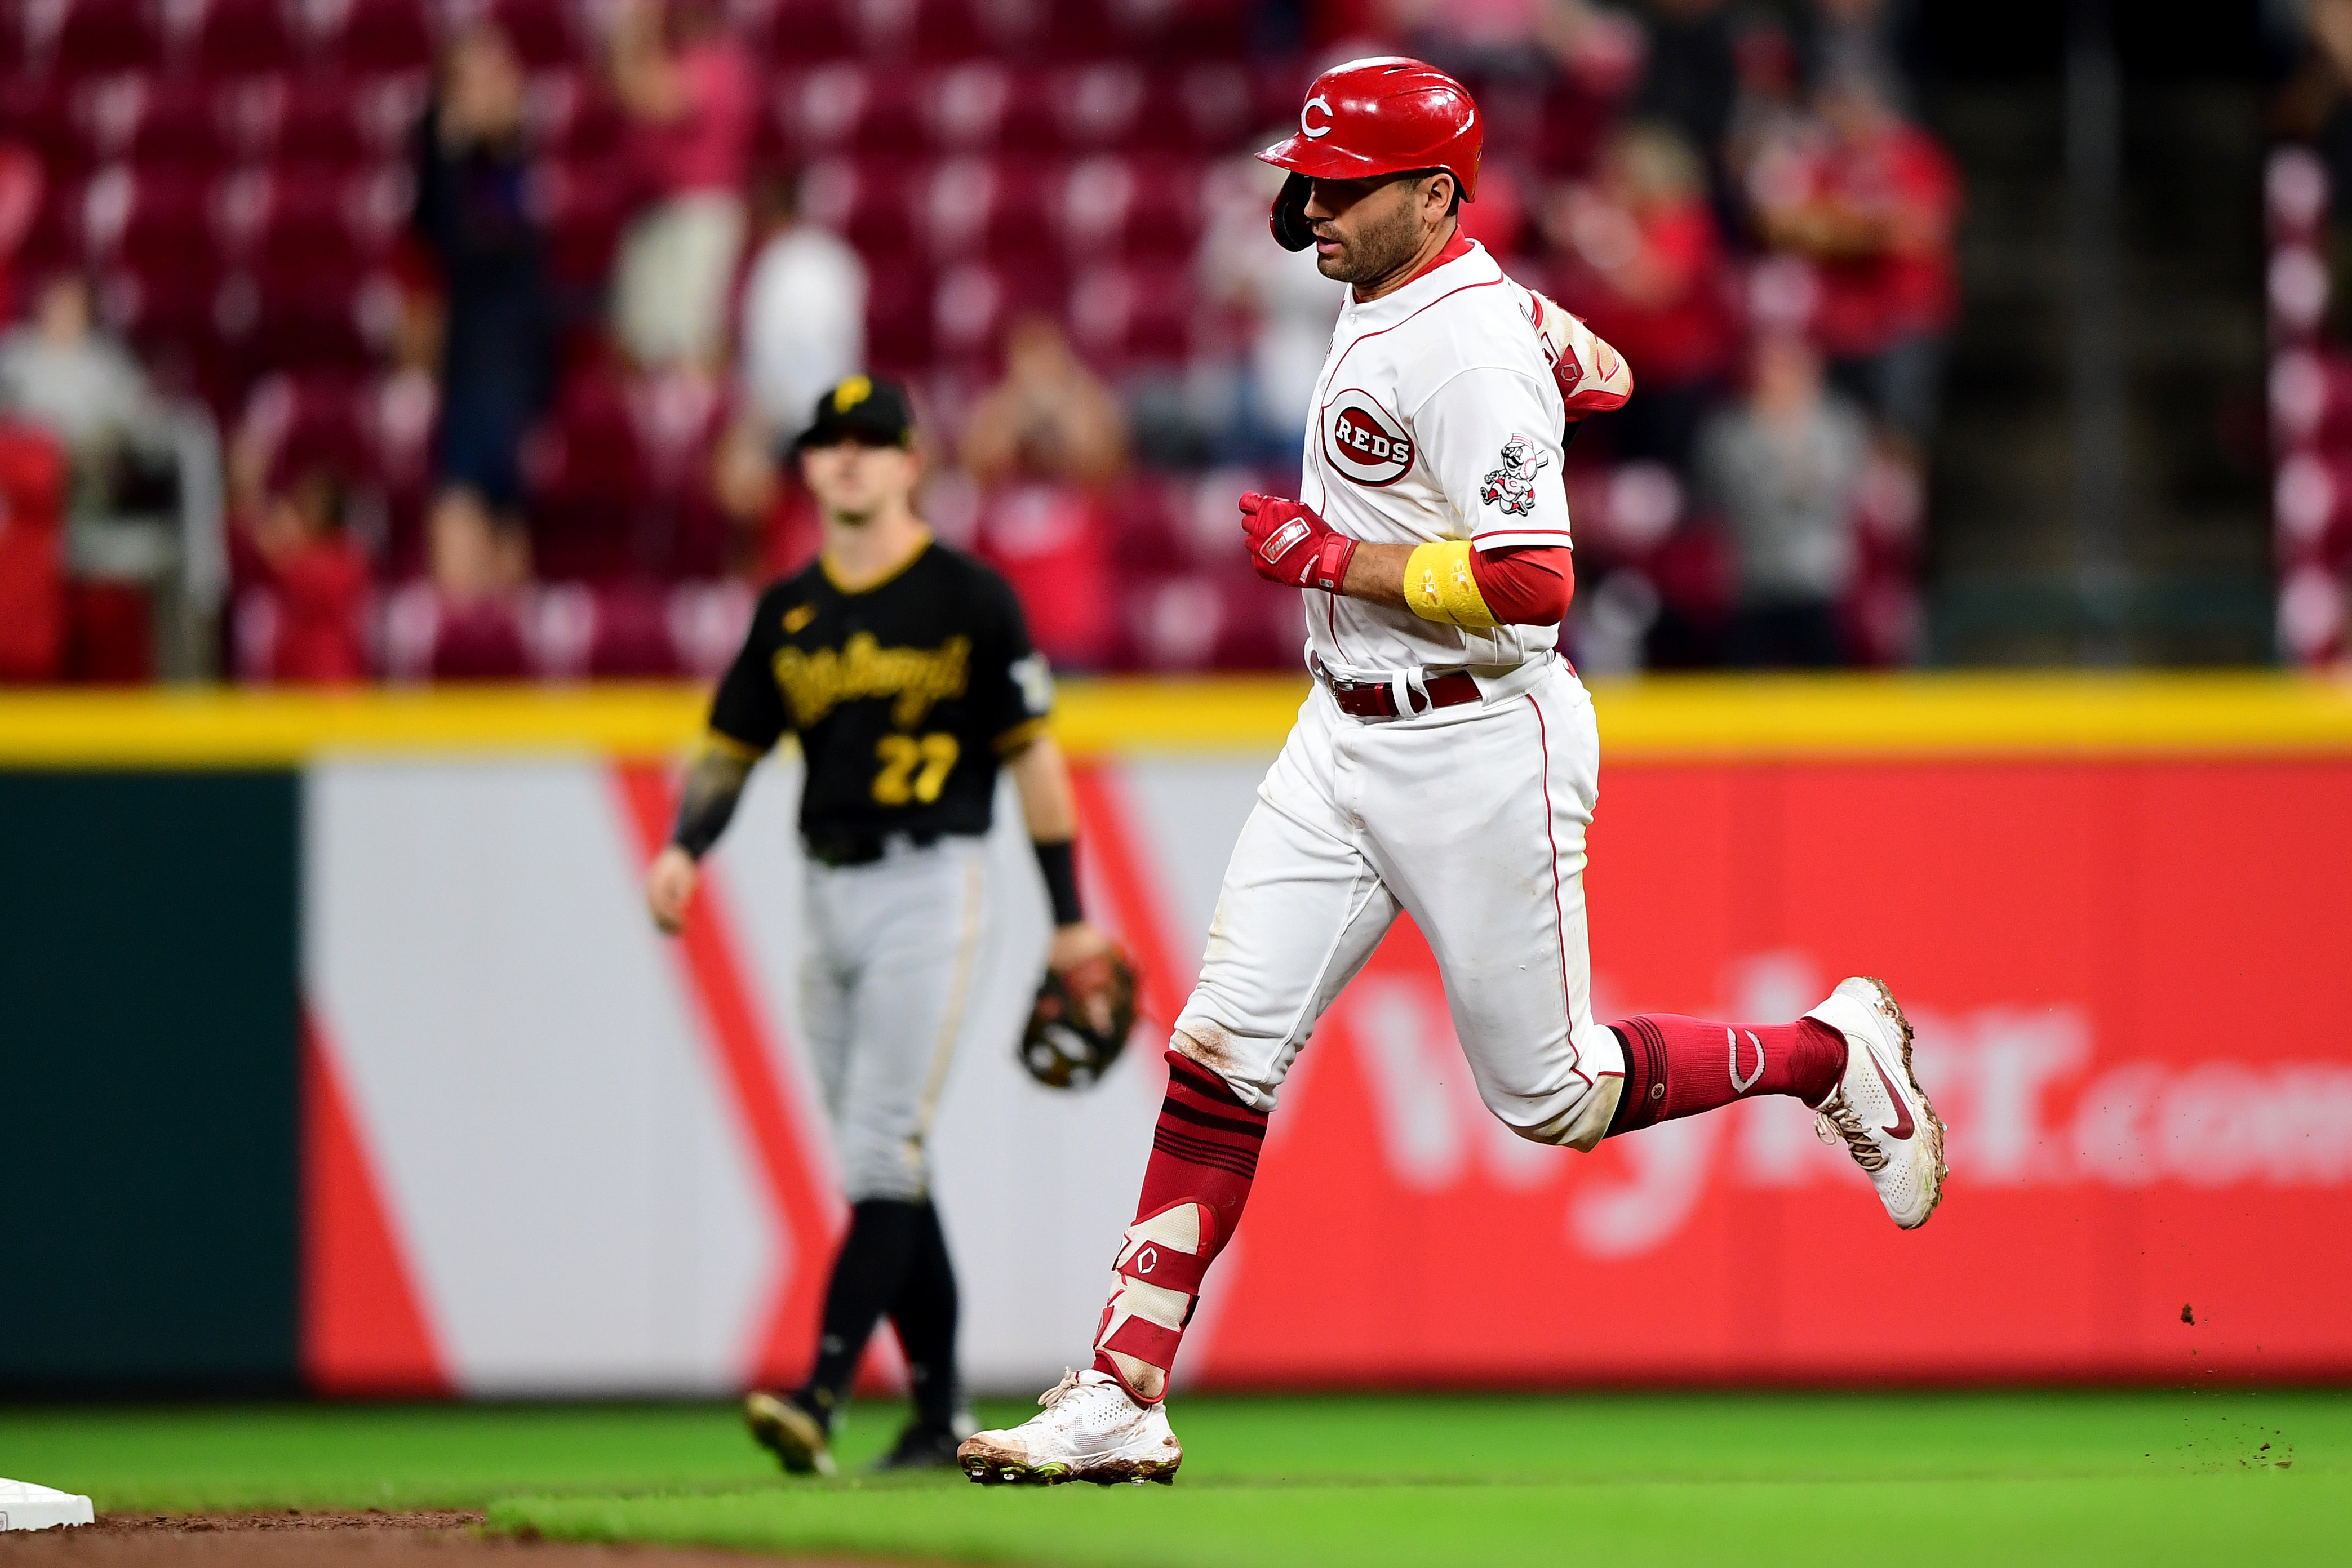 Joey Votto #19 of the Cincinnati Reds runs the bases after hitting a home run in the fifth inning during a game between the Cincinnati Reds and Pittsburgh Pirates at Great American Ball Park on September 20, 2021 in Cincinnati, Ohio.